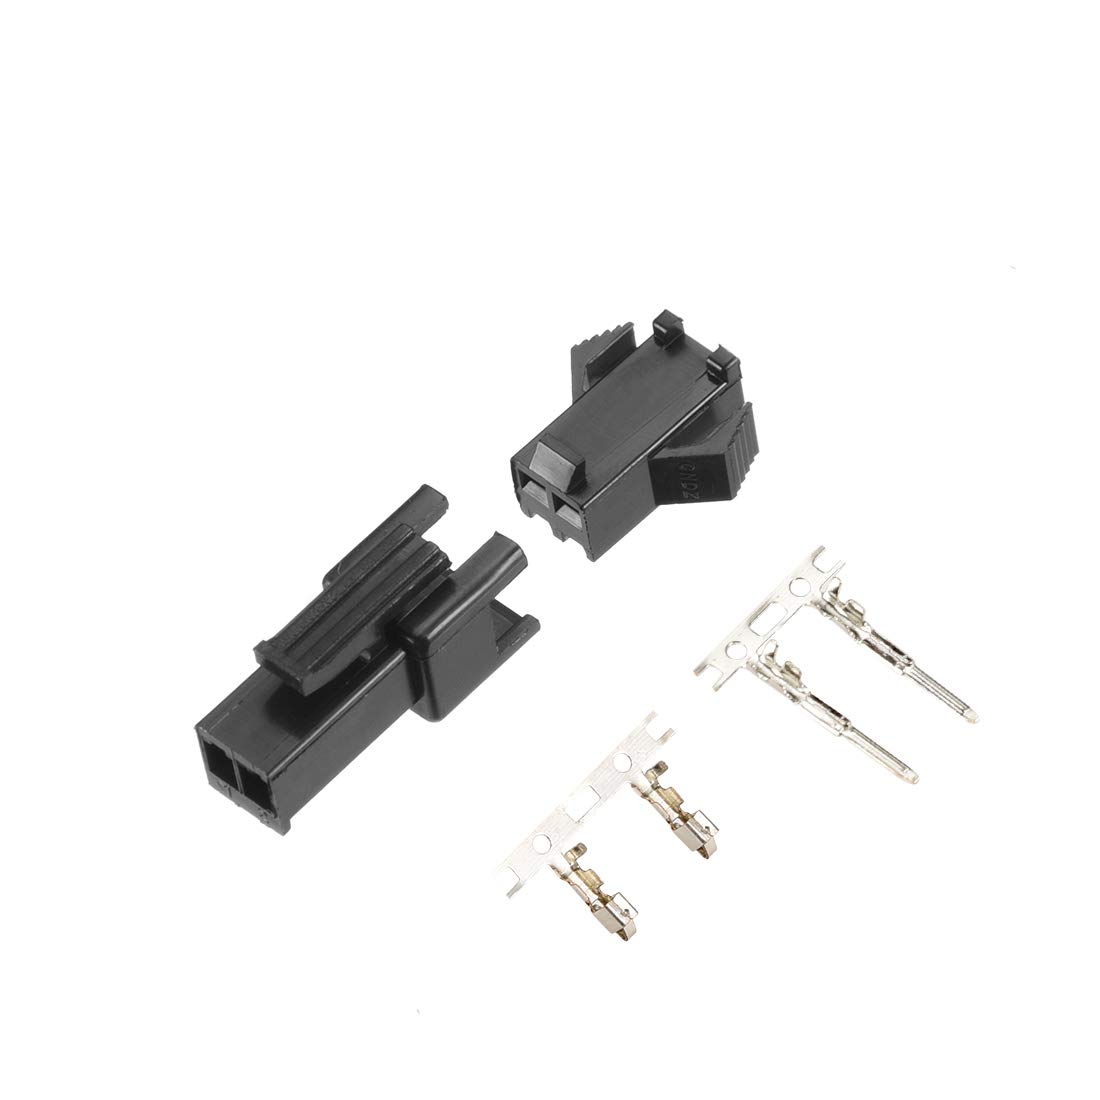 uxcell 100 Pairs 2.54mm 2 Pin Black Plastic Male Female JST-SM Housing Crimp Terminal Connector